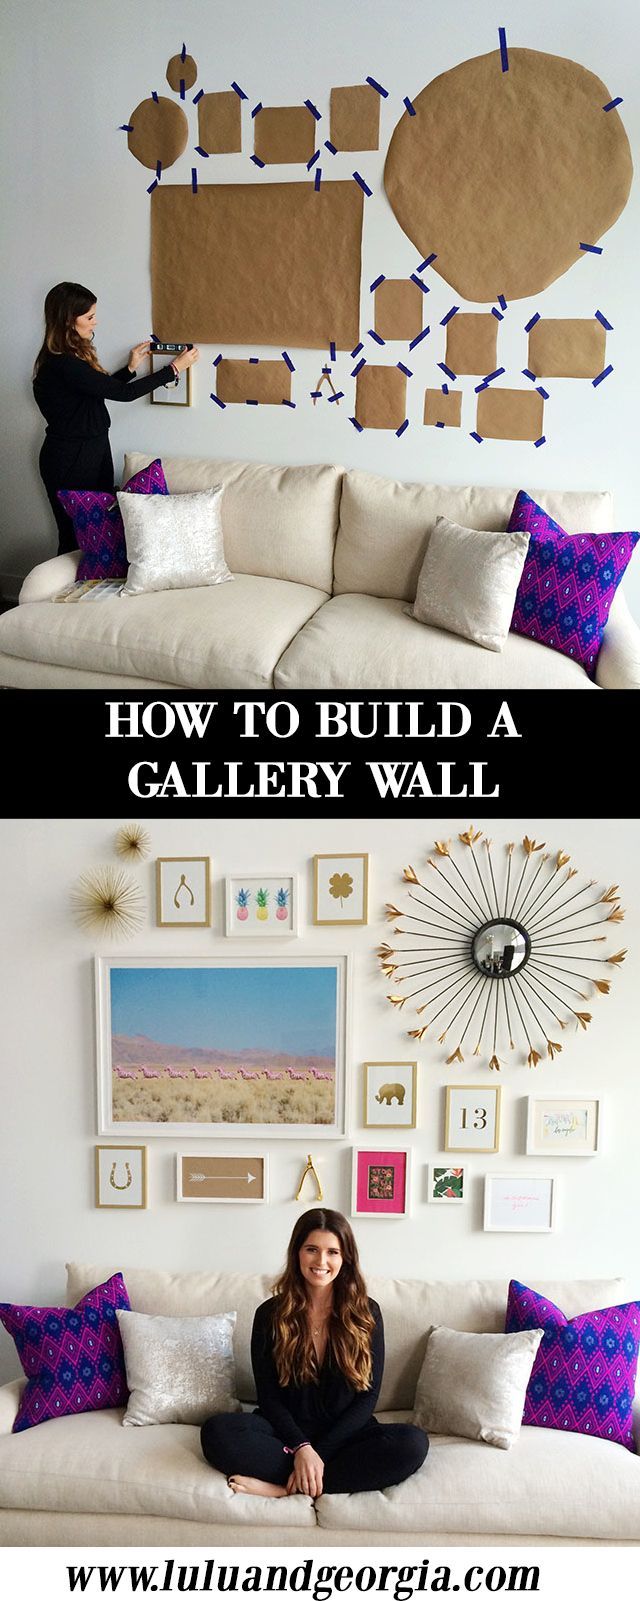 "HOW TO: Building a Gallery Wall. 1. Choose larger pieces as anchors. 2. Choose a color scheme. 3. Play with scale - vary the size and orientation of the art. 4. Keep at least 1.5"" - 3"" between each piece. 5. Allow at least 6"" between the couch and the first frame. 6. Use 2 to 3 styles of frames. 7. Use different mediums of art - photography, art prints, gift wrap, decorative objects, etc."